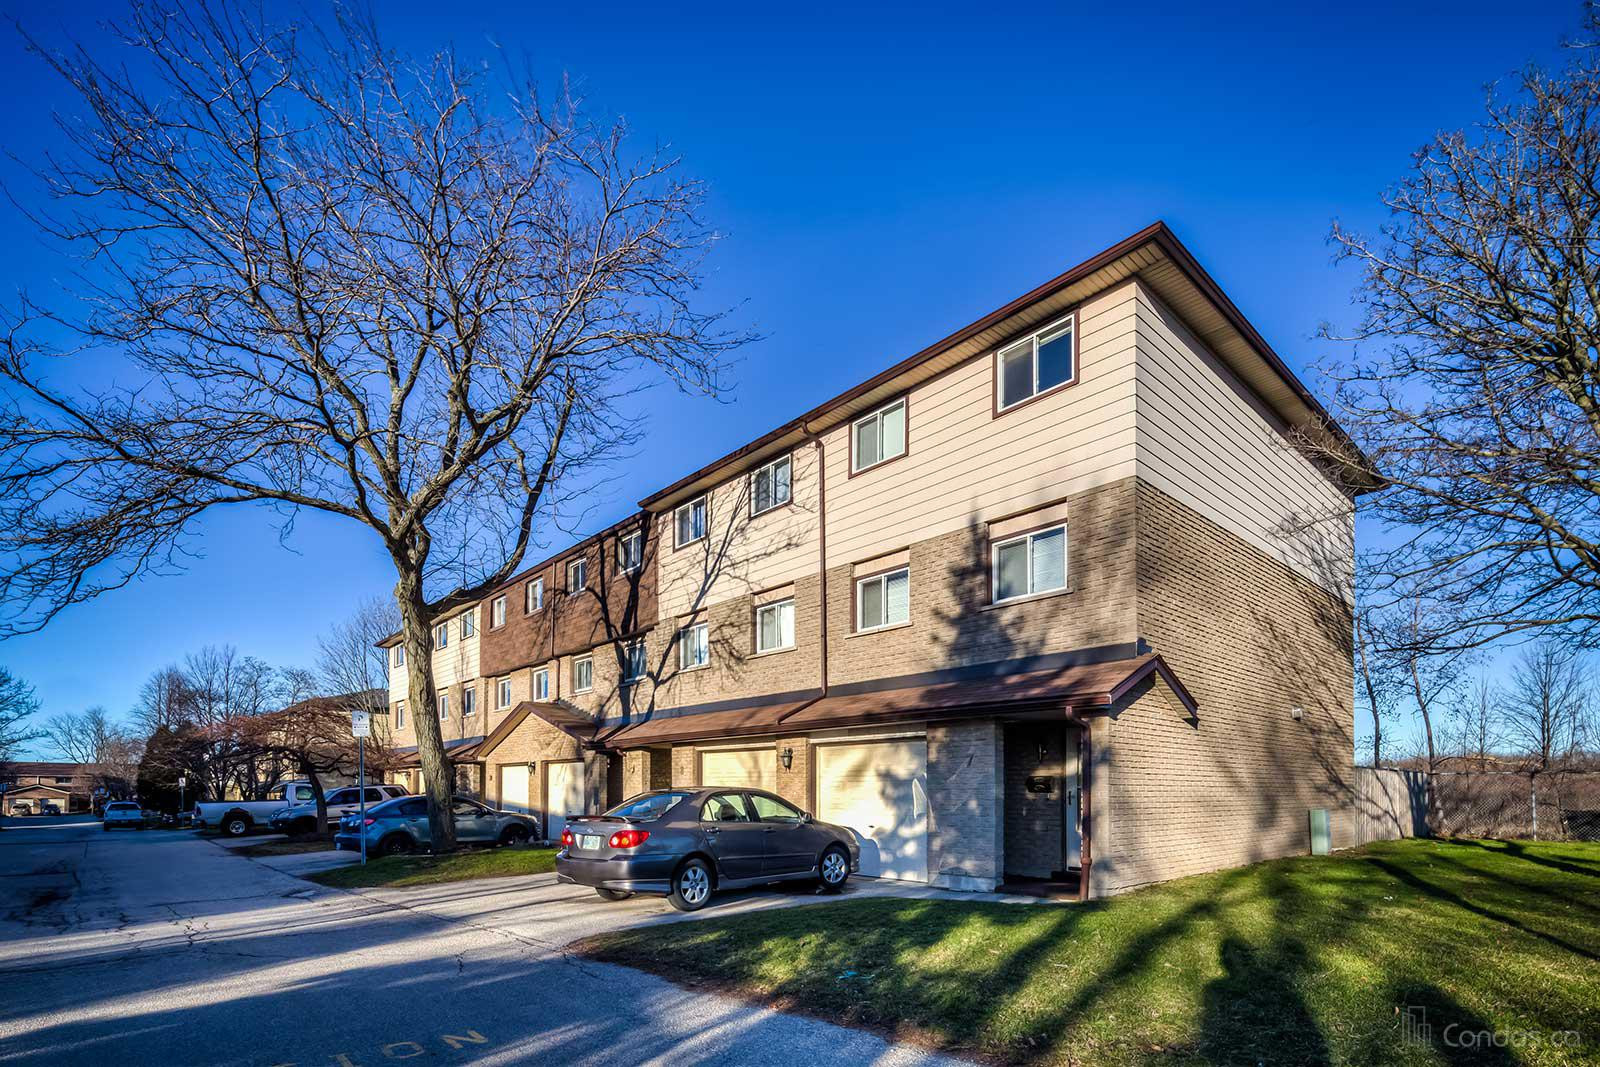 1455 Garth Condos at 1455 Garth St, Hamilton City 1